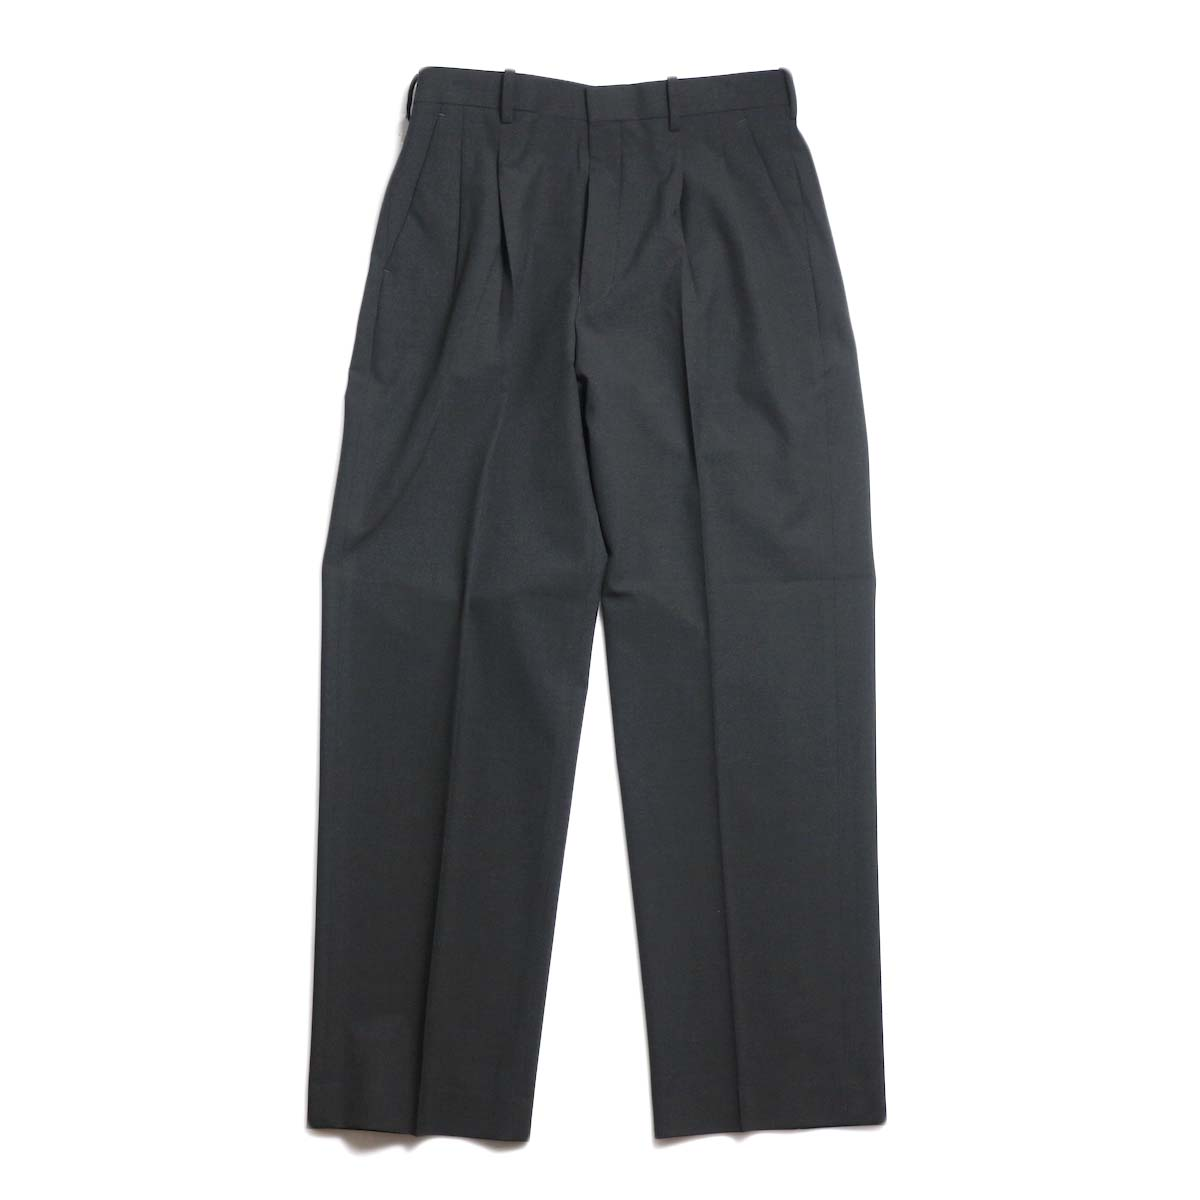 N.HOOLYWOOD / 191-PT08-055-pieces 2tuck Slacks (Charcoal)